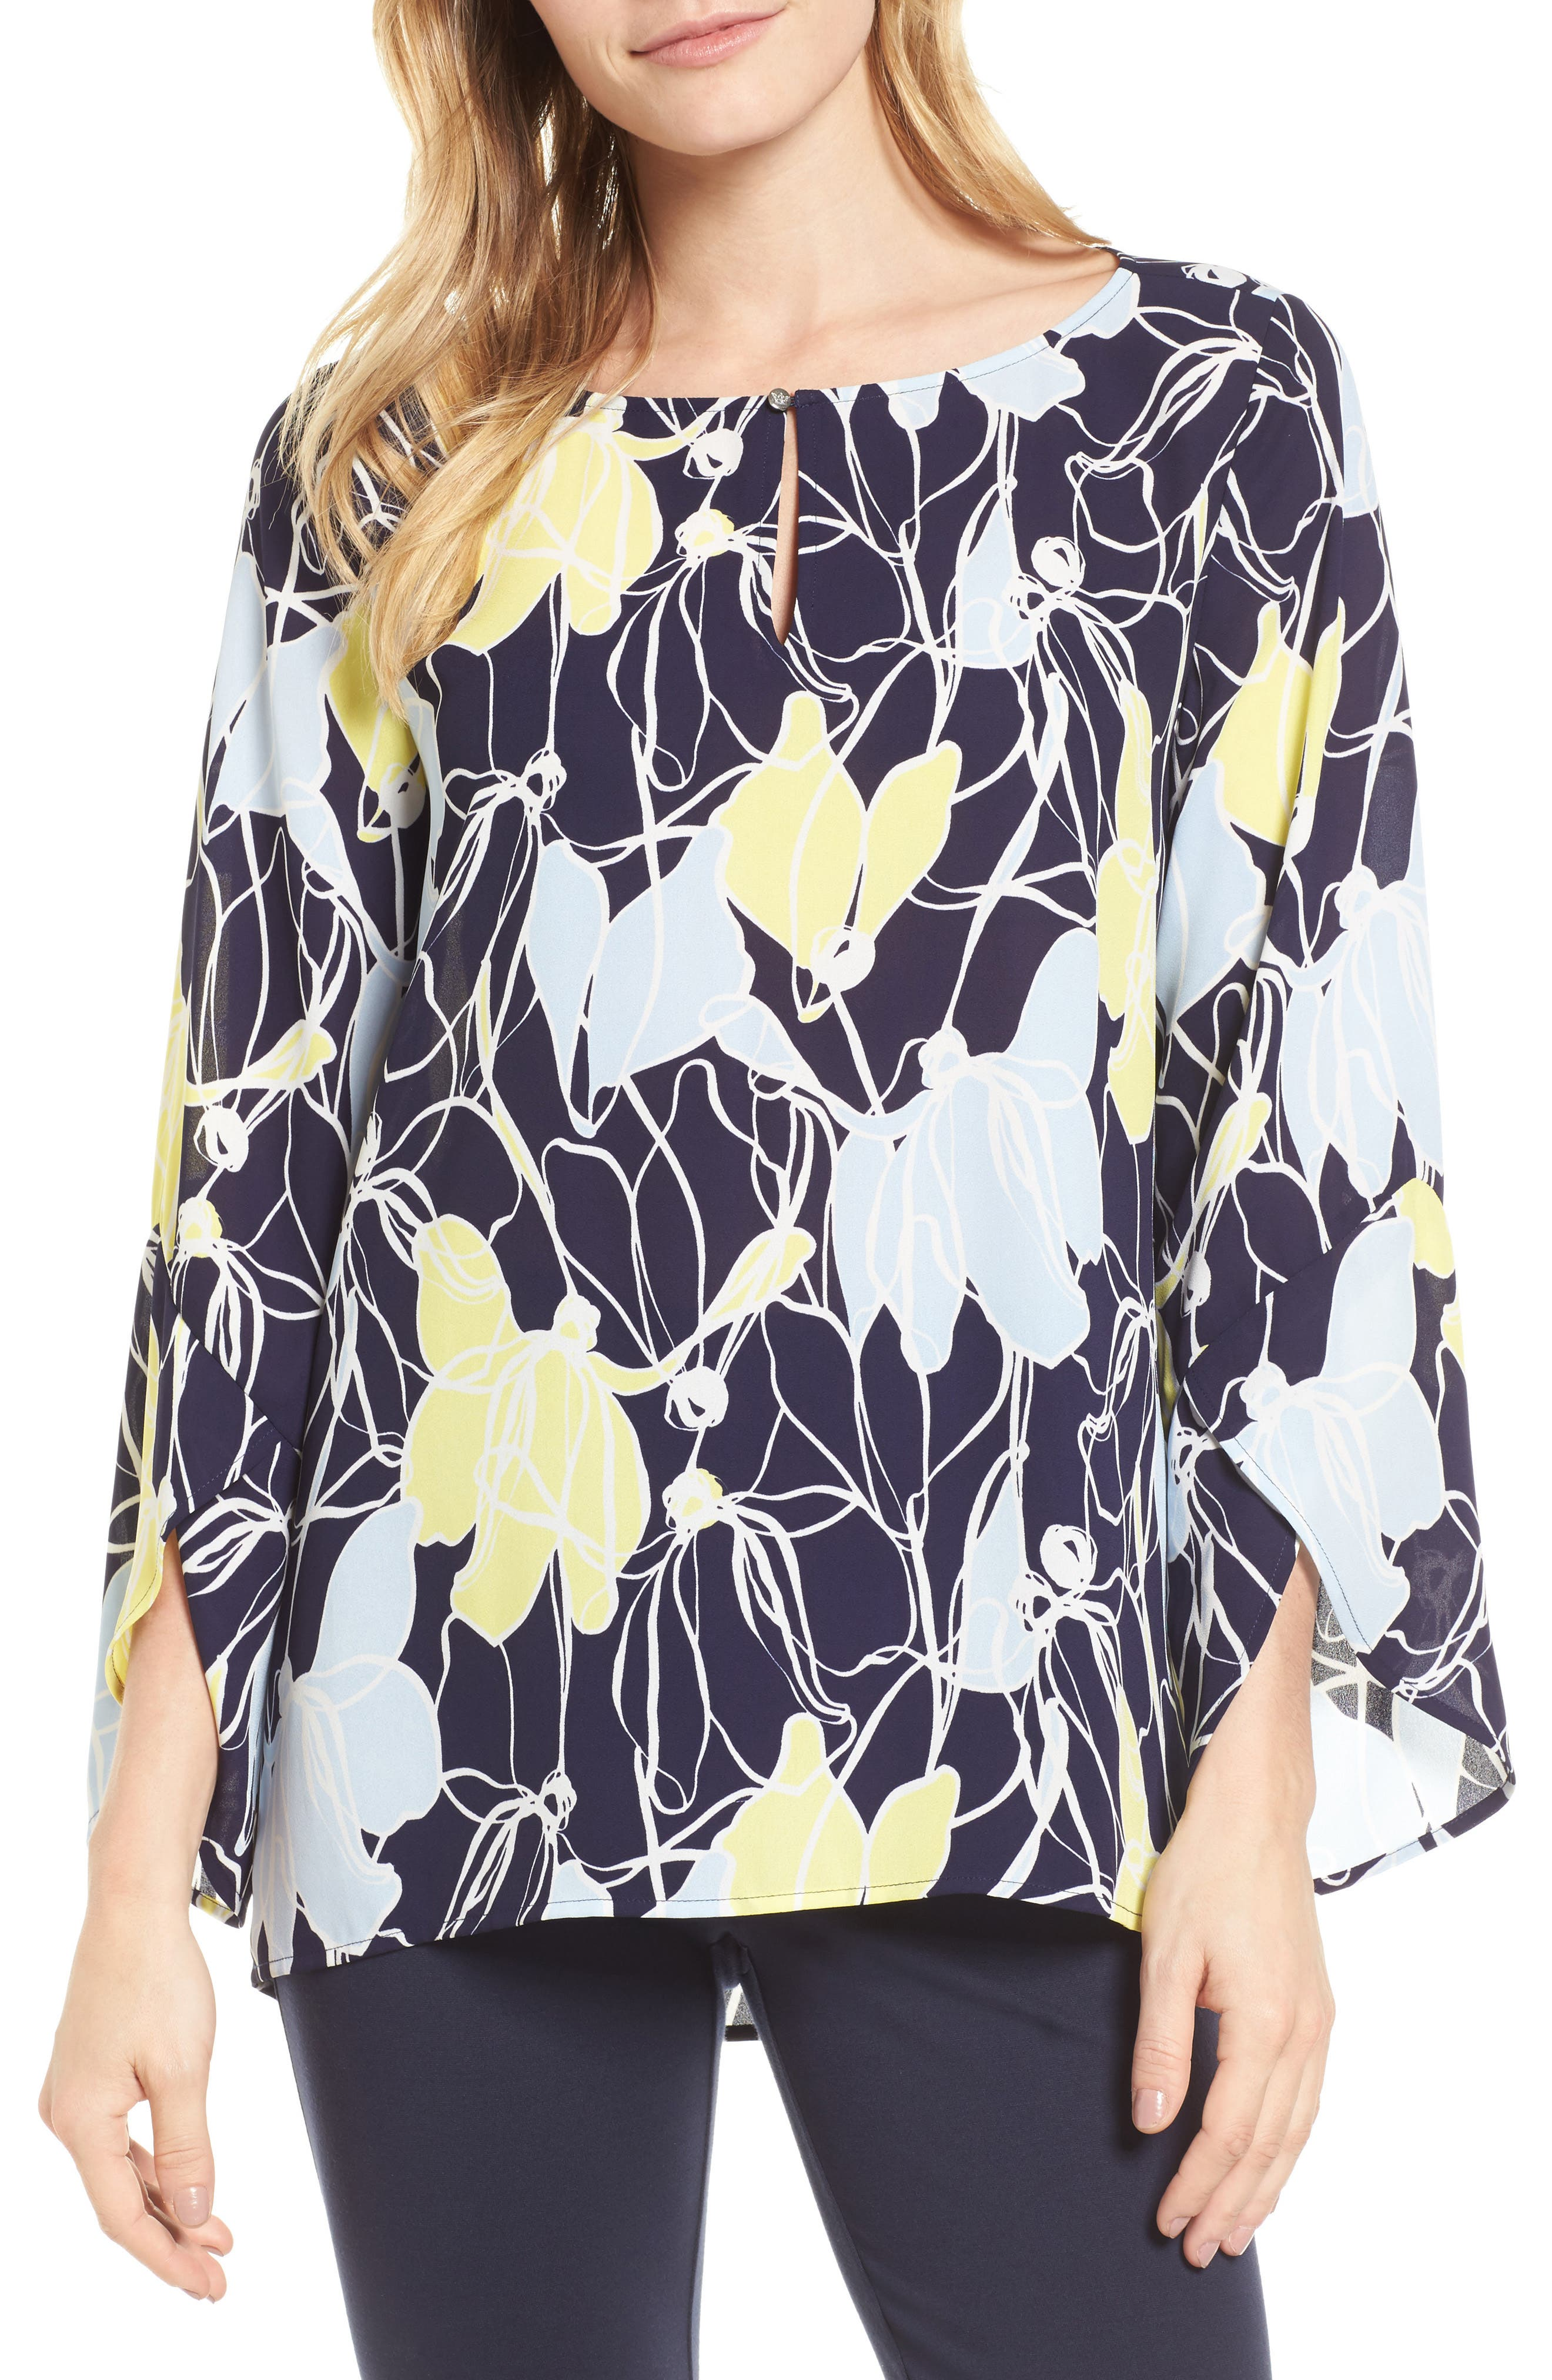 Aerial Flowers Keyhole Top,                             Main thumbnail 1, color,                             529-Evening Navy